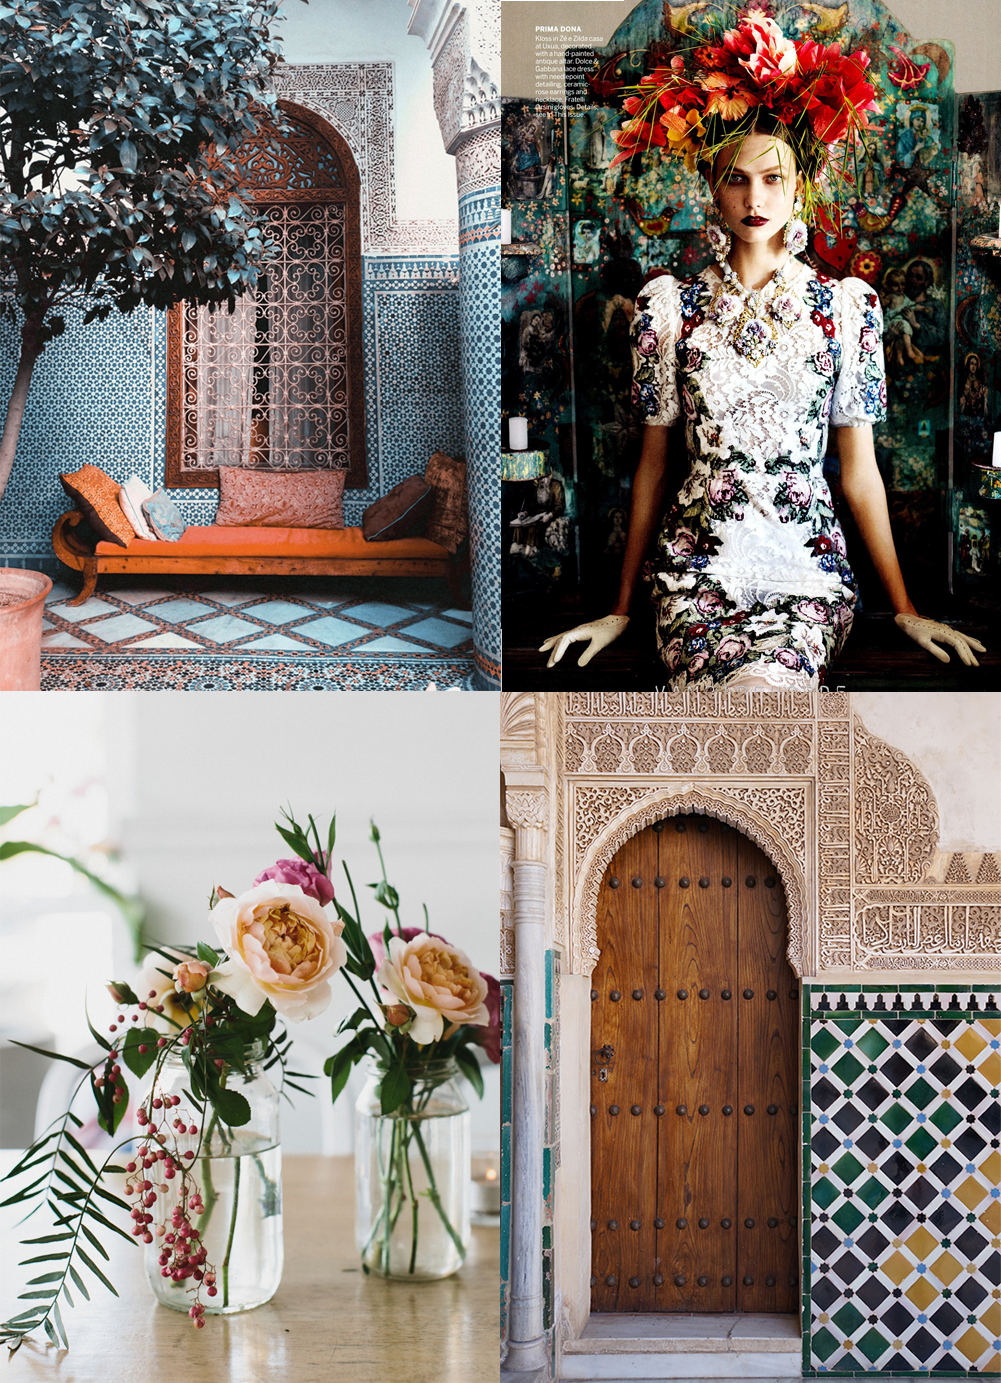 moroccan tiles, fall colors, navy blue tile, fall flowers, karlie kloss vogue